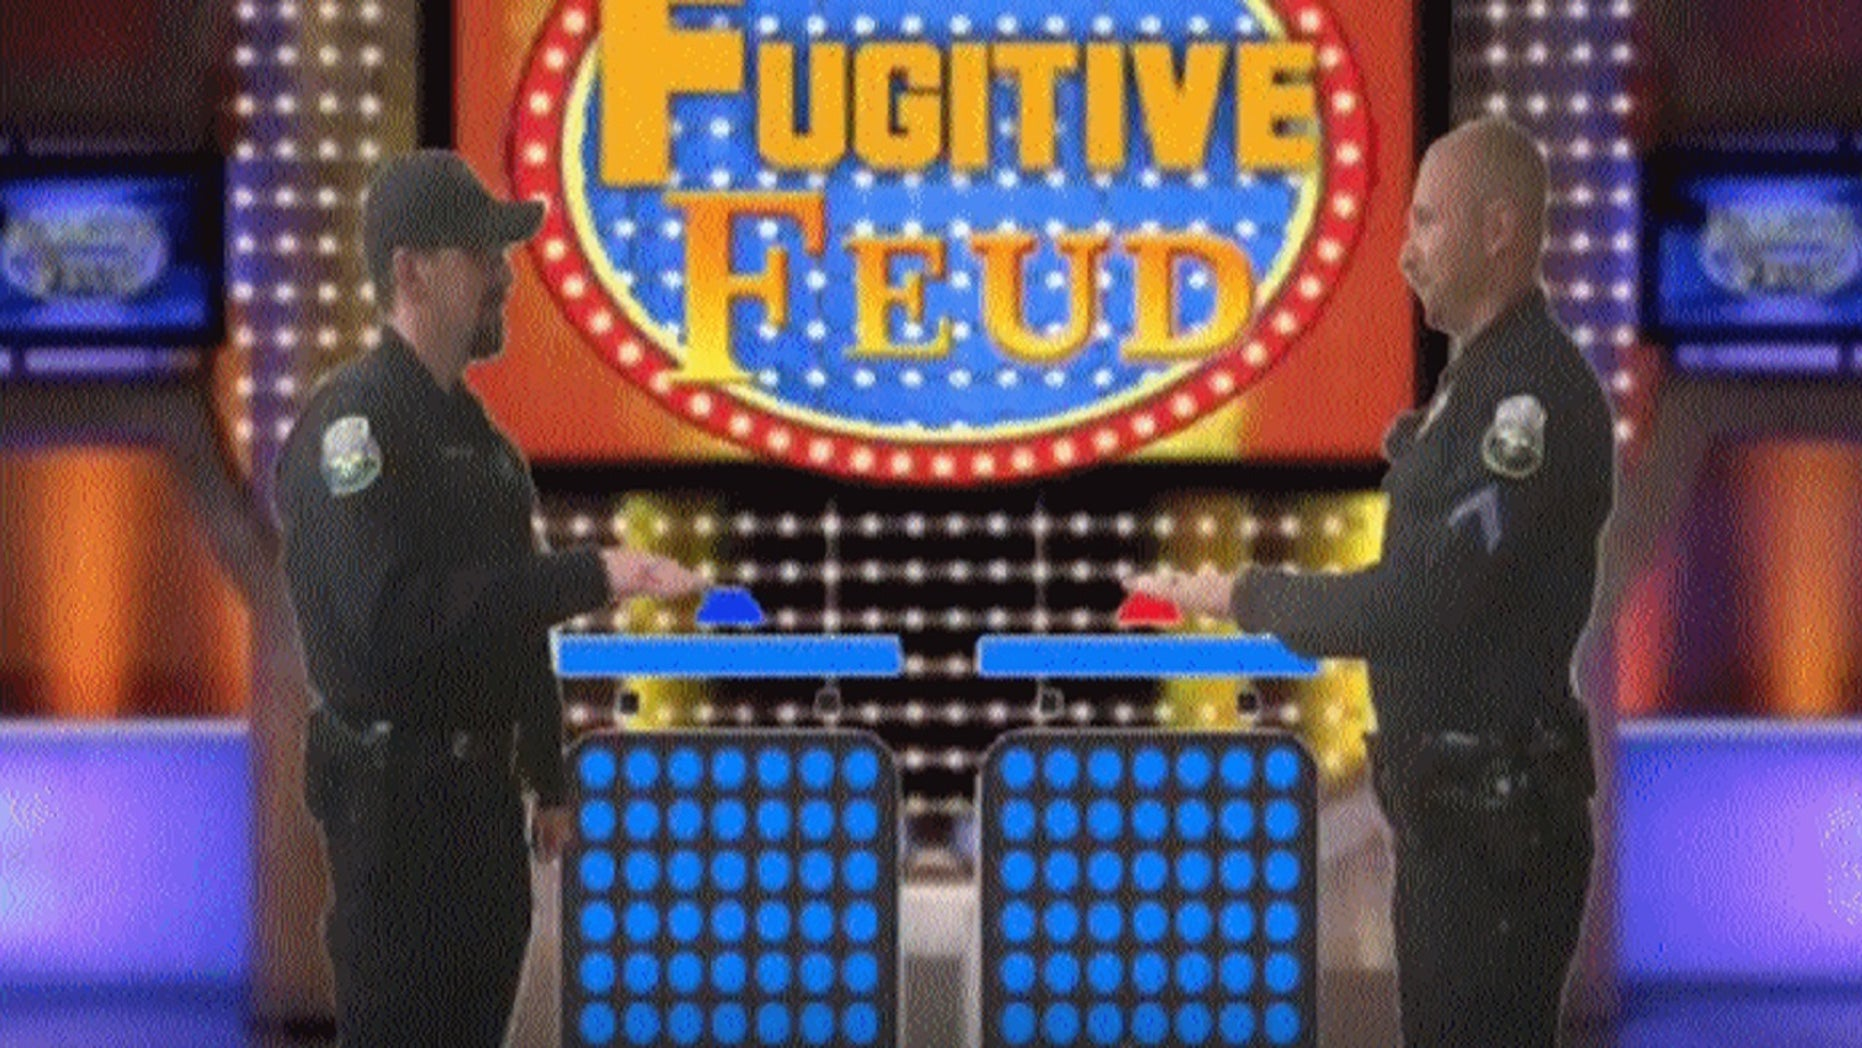 """The Durango Police Department have created their own version of the popular game show """"Family Feud"""" to capture wanted fugitives, naming it """"Fugitive Feud."""""""